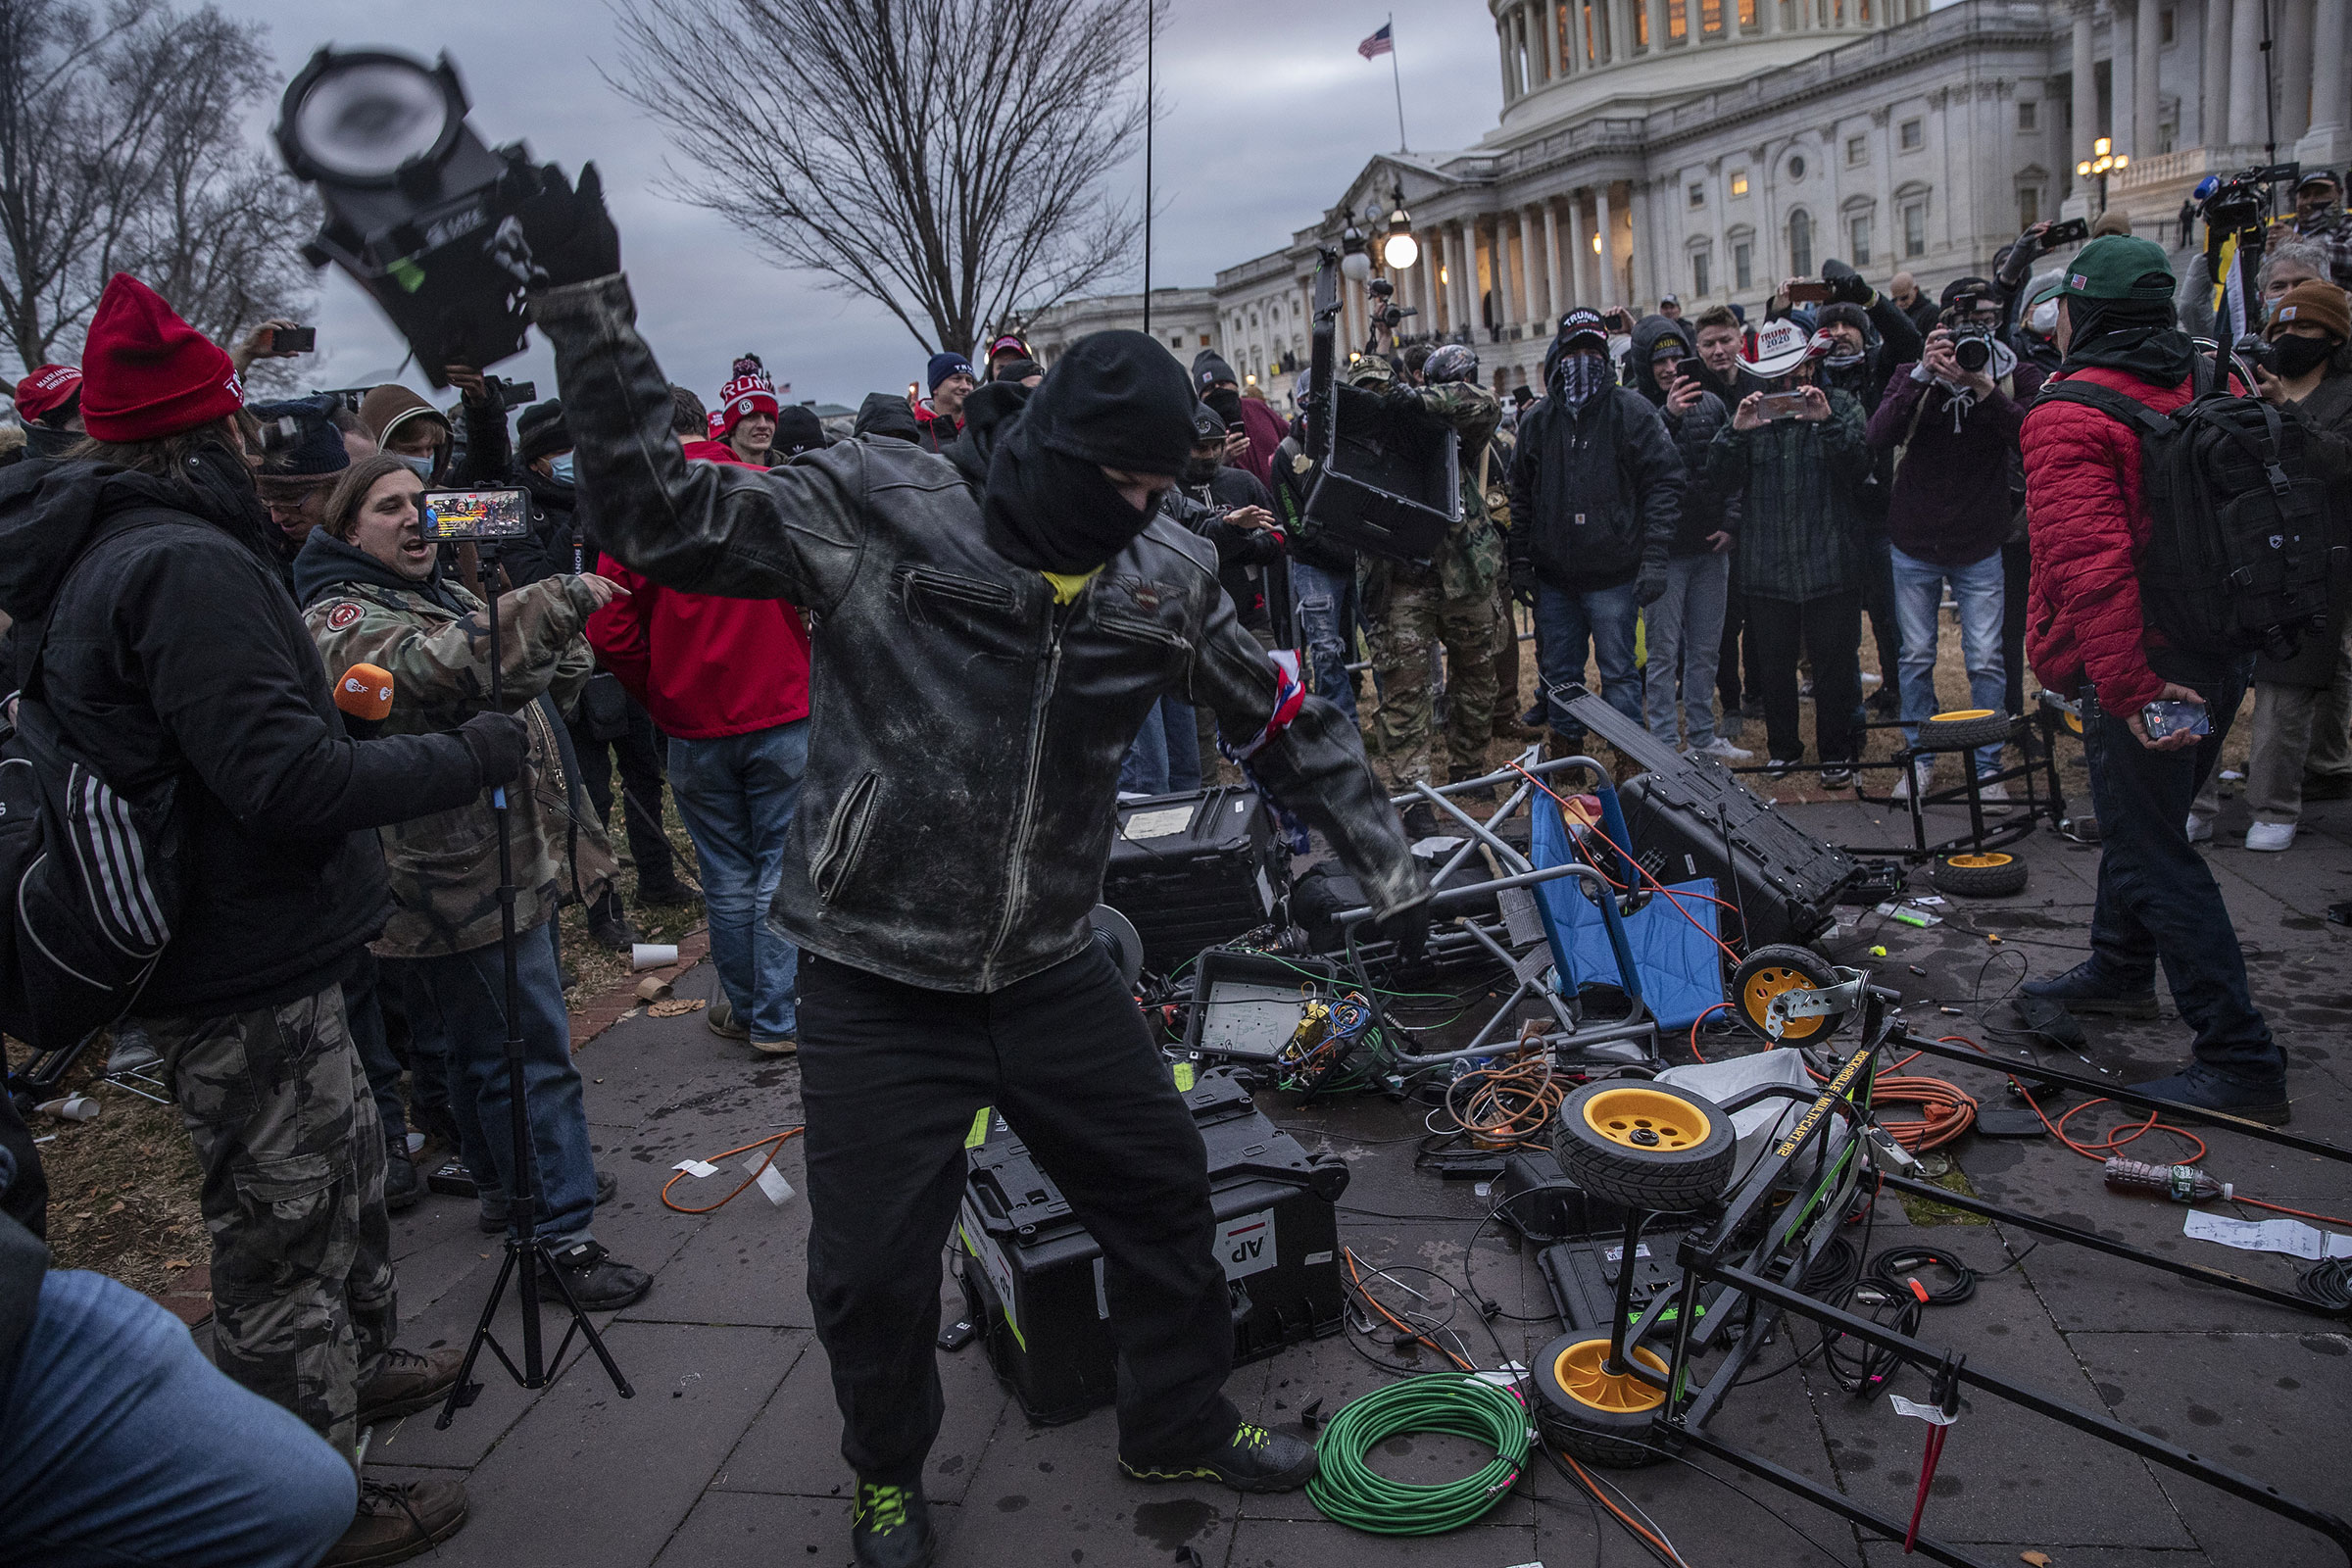 Demonstrators destroy broadcast video equipment outside the U.S. Capitol building after they earlier stormed the building in Washington, DC, U.S., on Wednesday, Jan. 6, 2021.